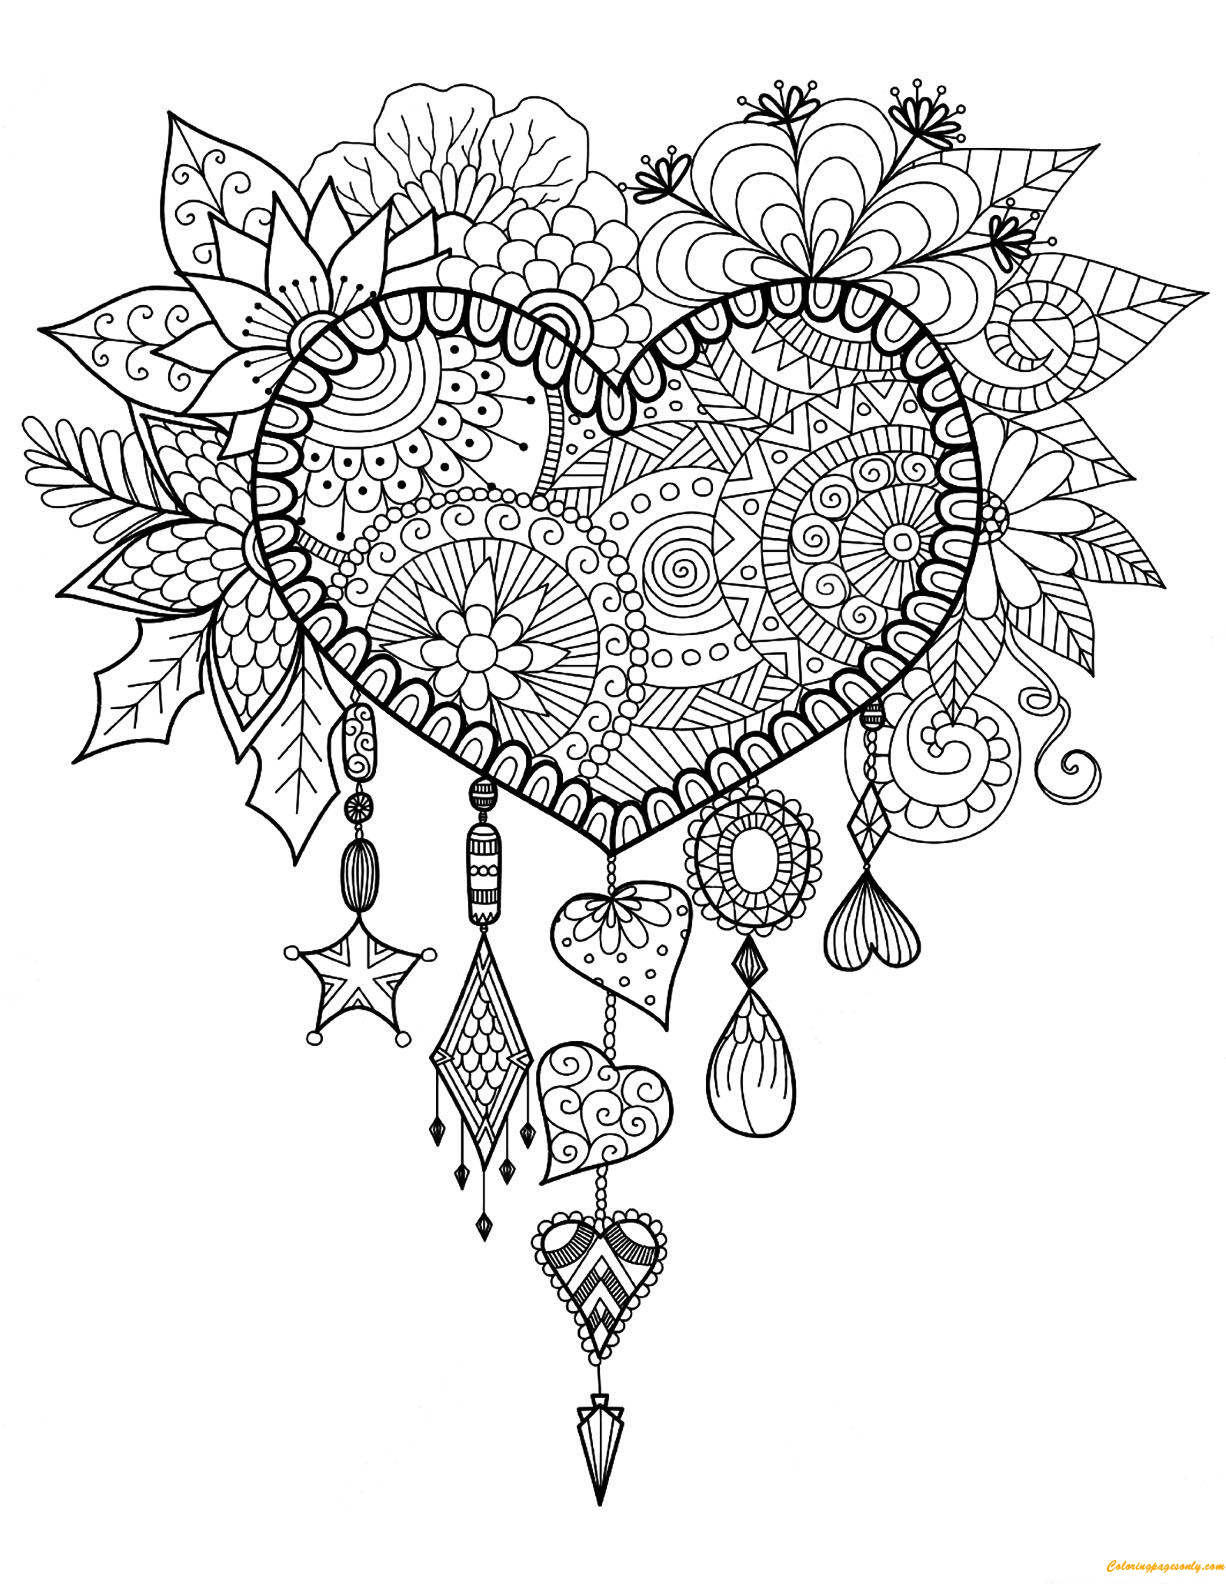 - Dreams Catcher Heart Coloring Page - Free Coloring Pages Online